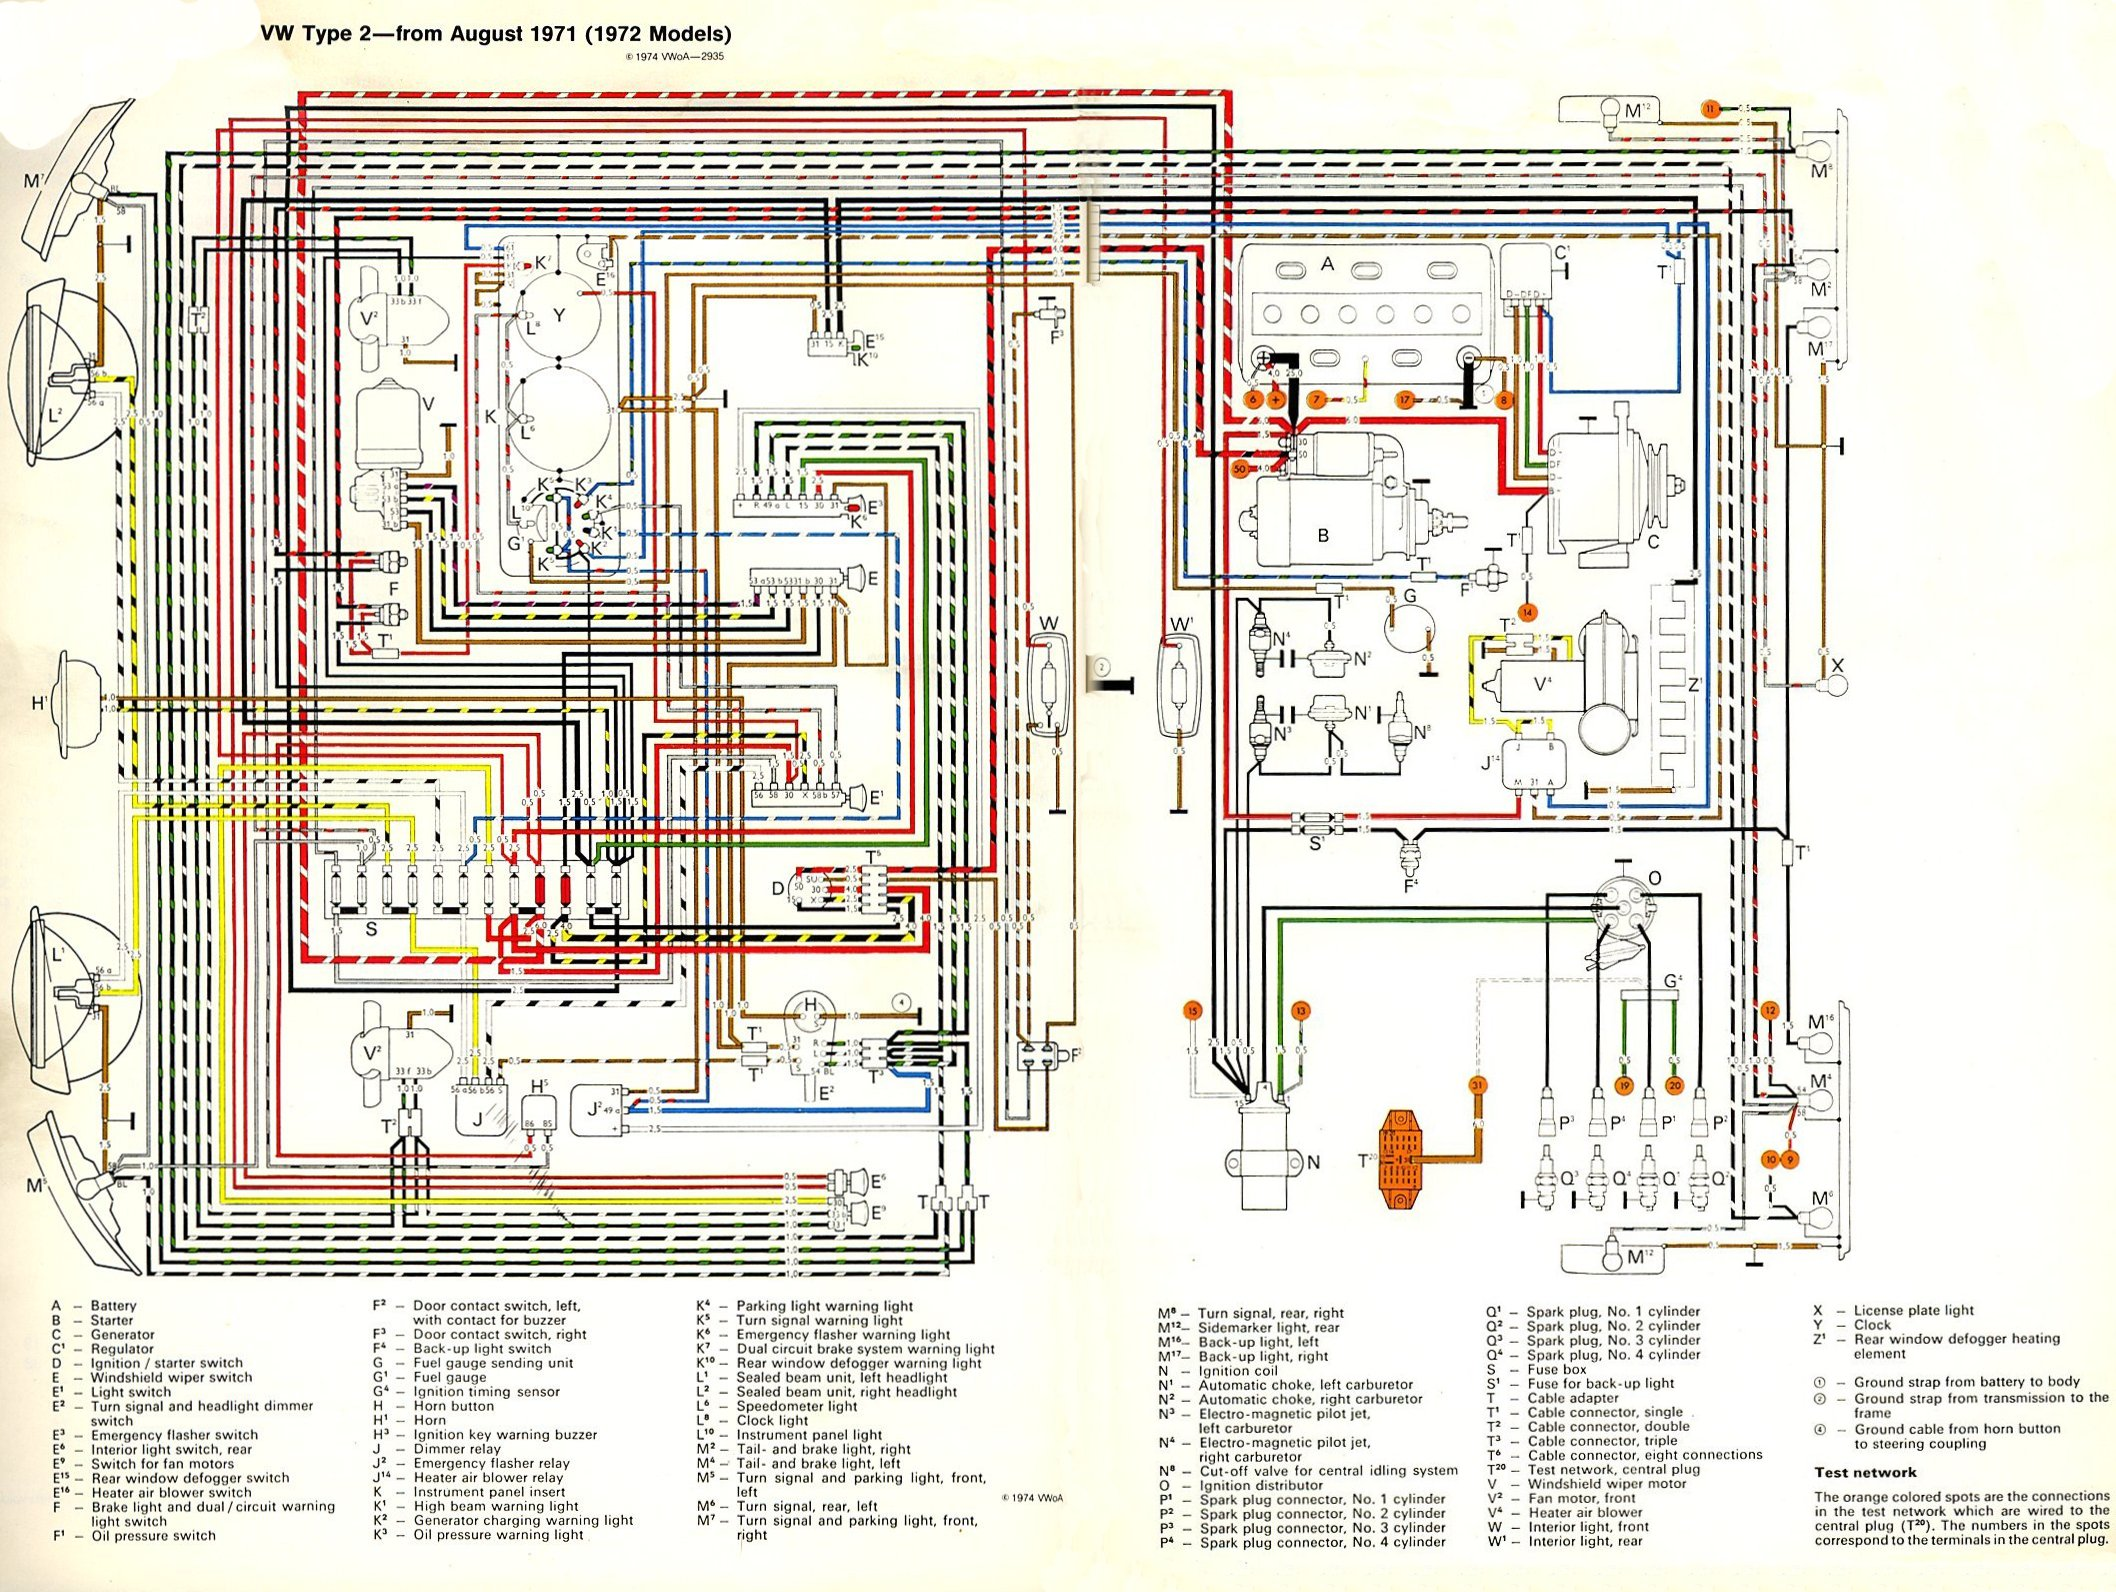 bus_1972_wiring bus_1972_wiring jpg (2116�1592) wire pinterest kombi camper vw t4 fuse box wiring diagram at mifinder.co